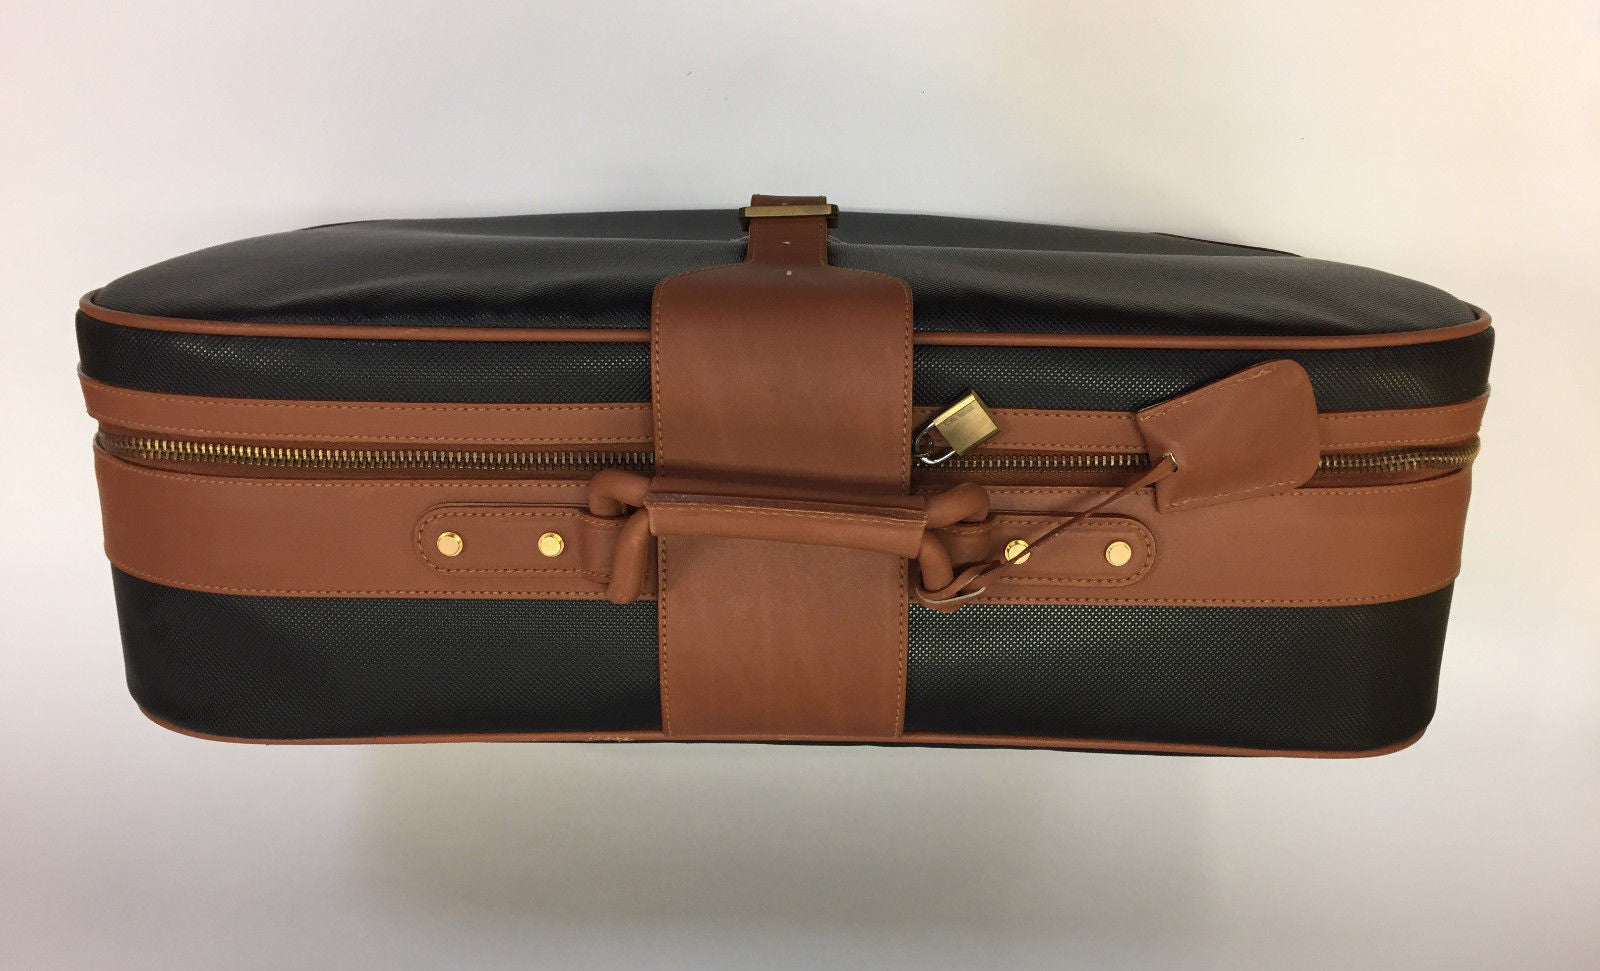 715e20f2a4 ... bisbiz.com BOTTEGA VENETA Black MARCO POLO Textured PVC Saddle Leather  Suitcase - Bis ...